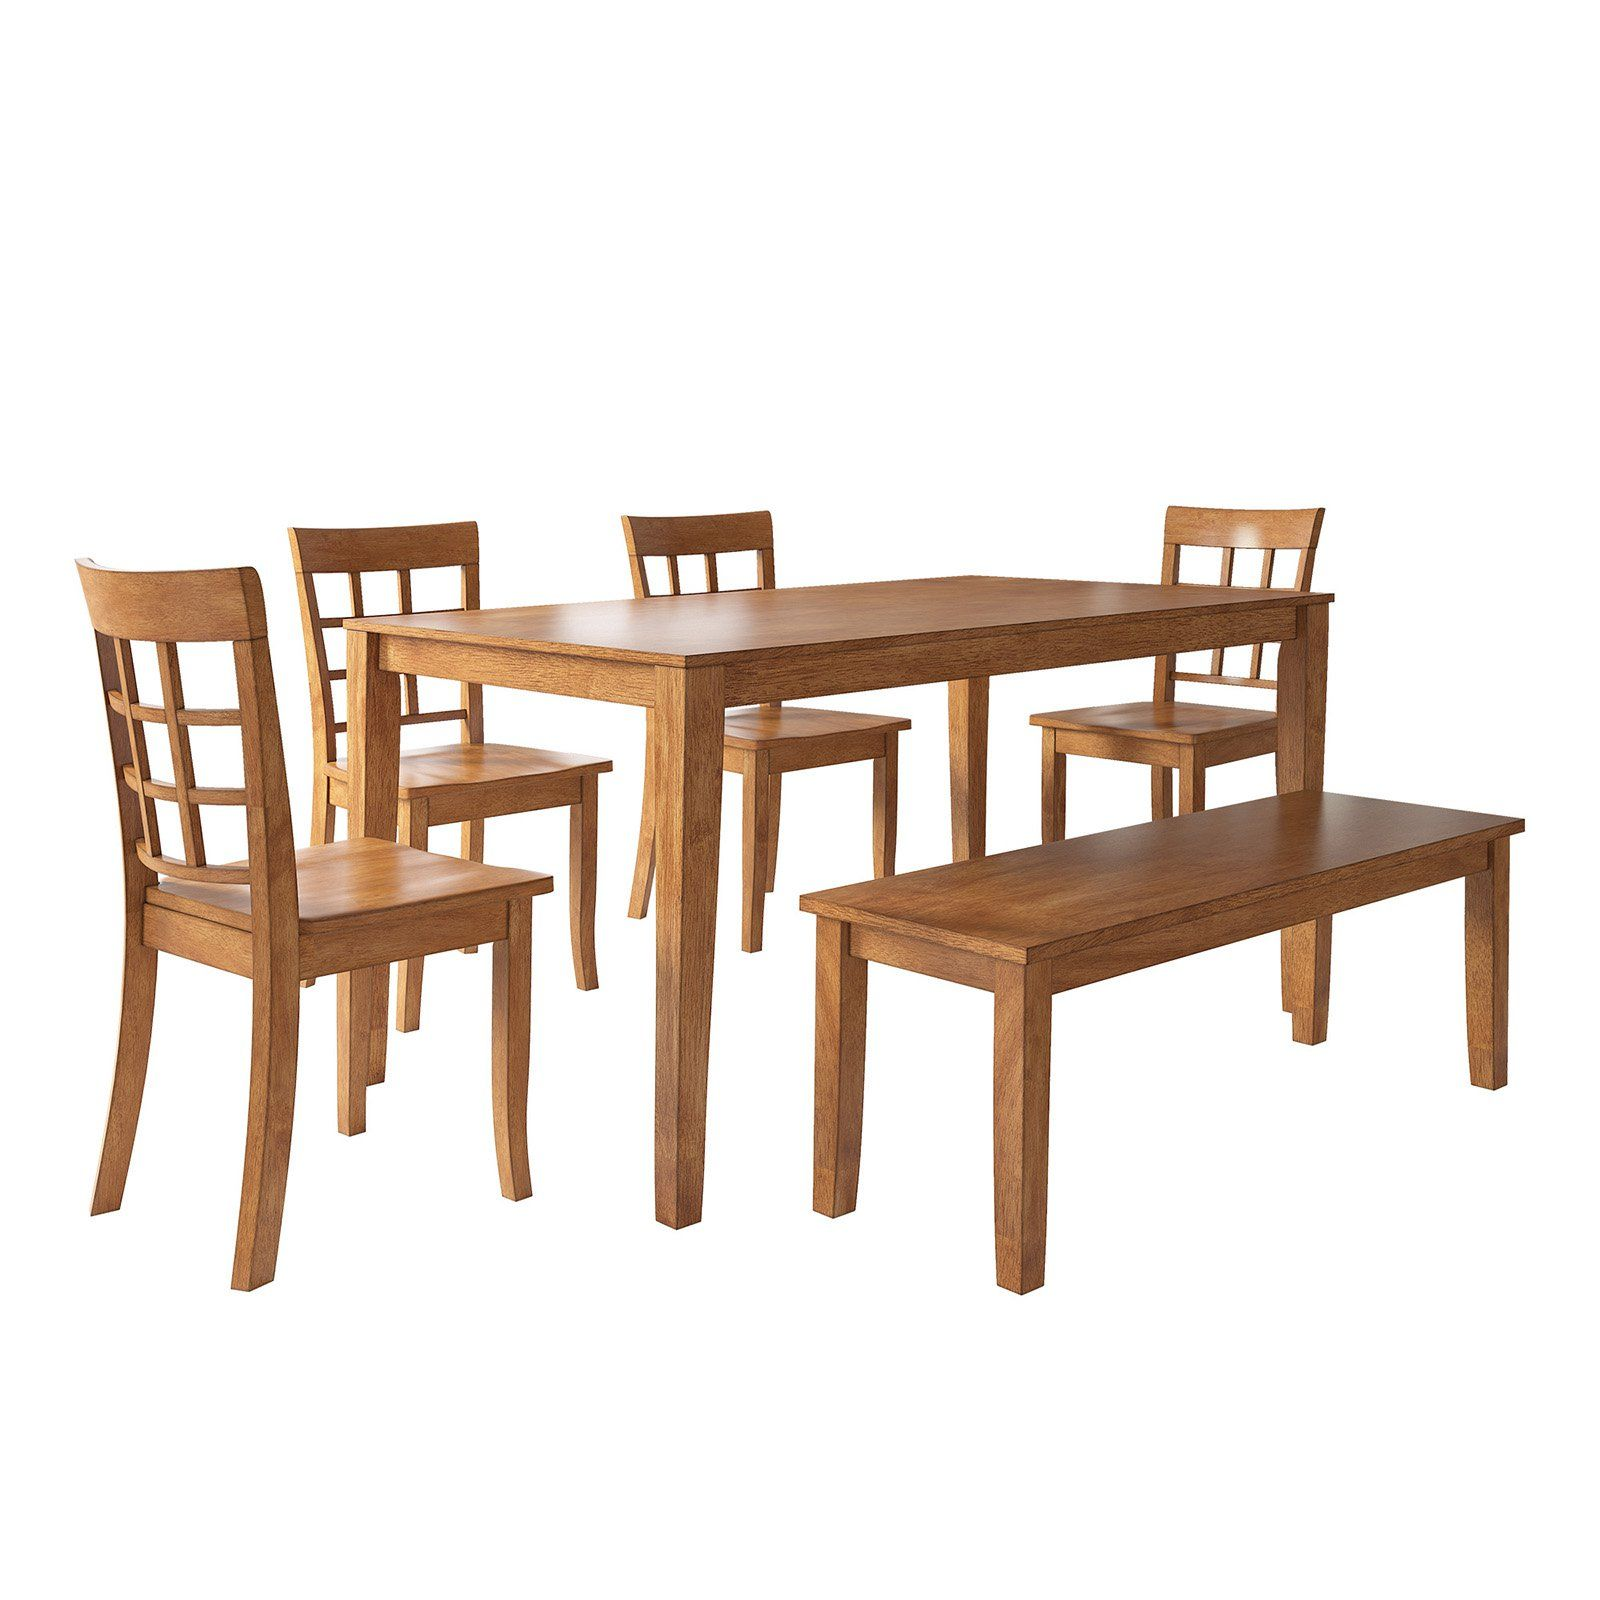 Weston Home Lexington 6 Piece Dining Set With Bench And Window